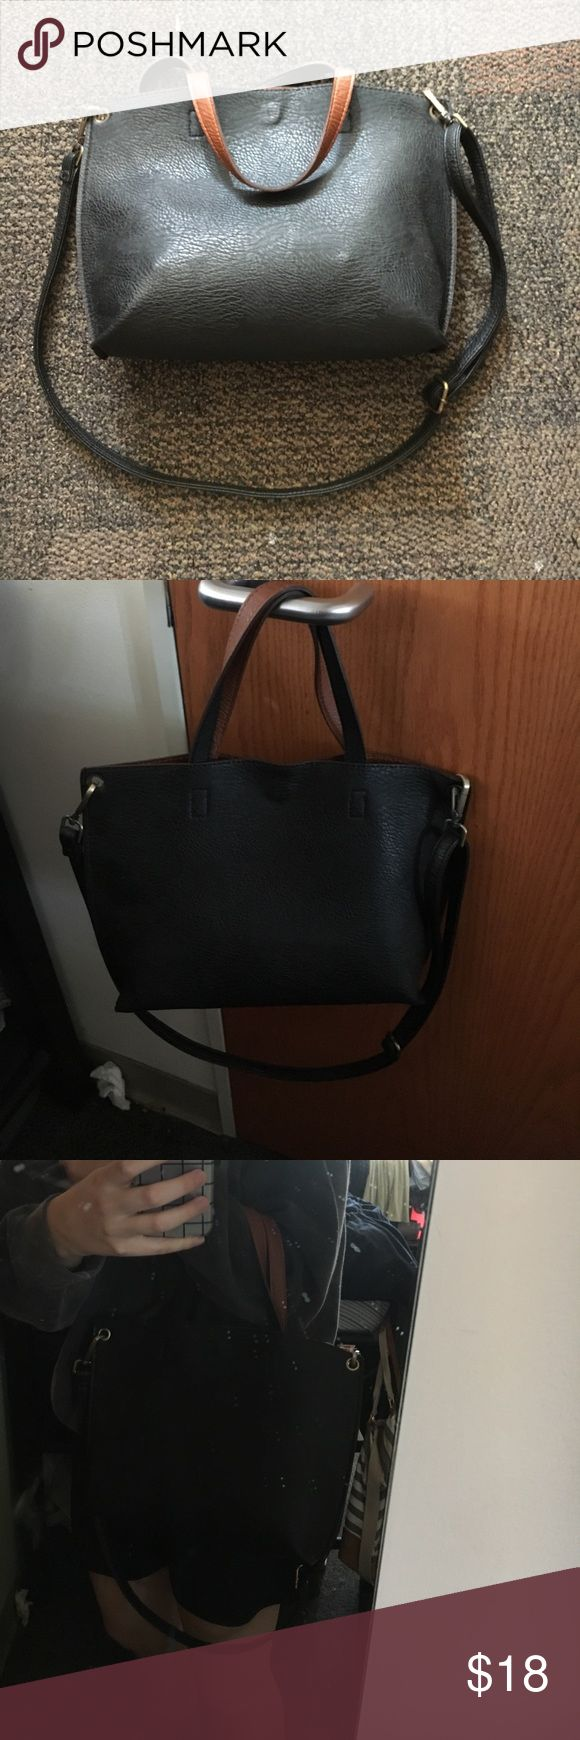 Black/tan reversible purse Black and Tan reversible mini tote bag. Great condition has a little removable wallet included. Cross body strap removable American Eagle Outfitters Bags Crossbody Bags